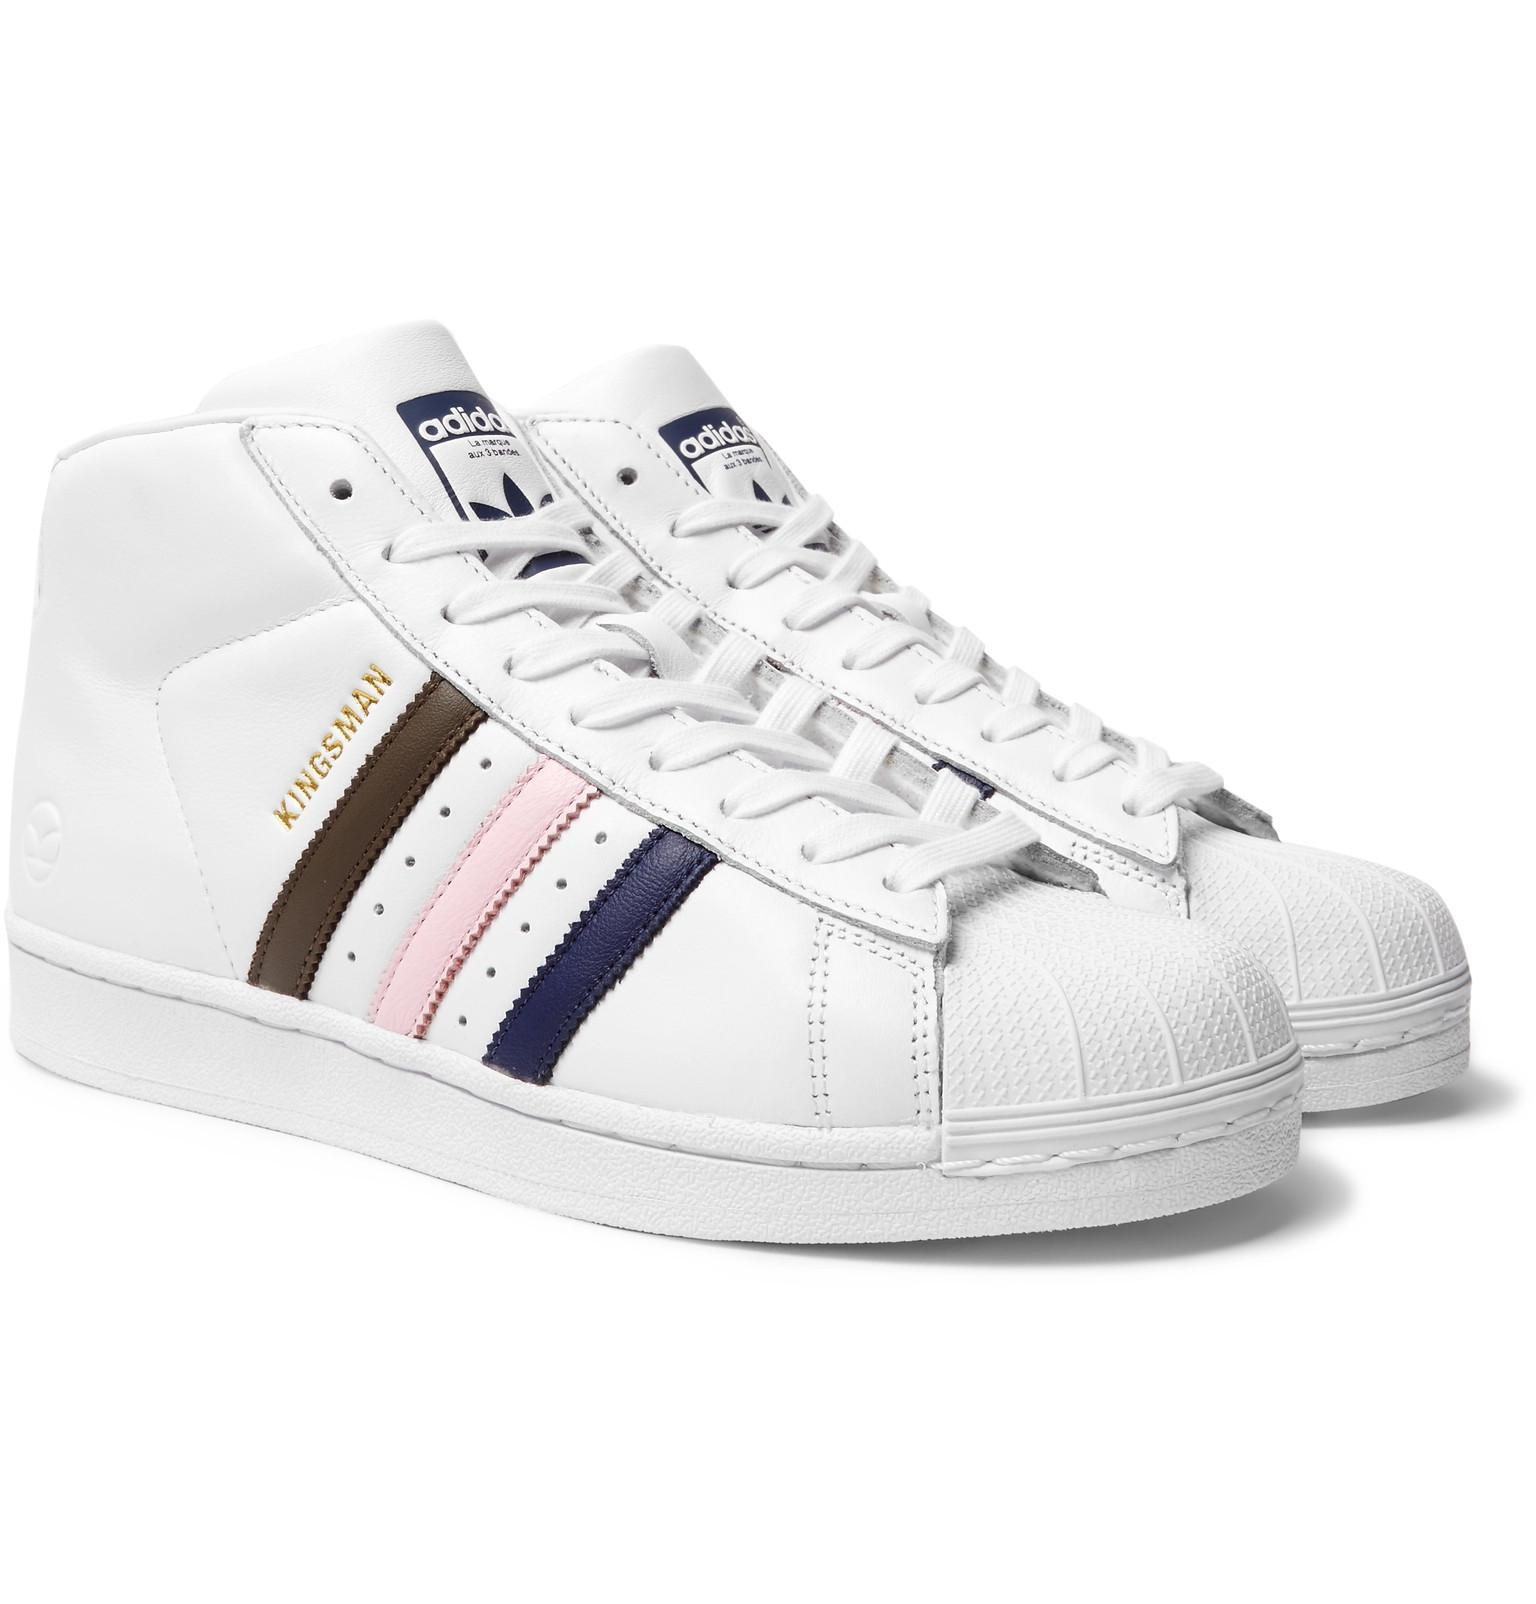 Superstars Shoes High Tops